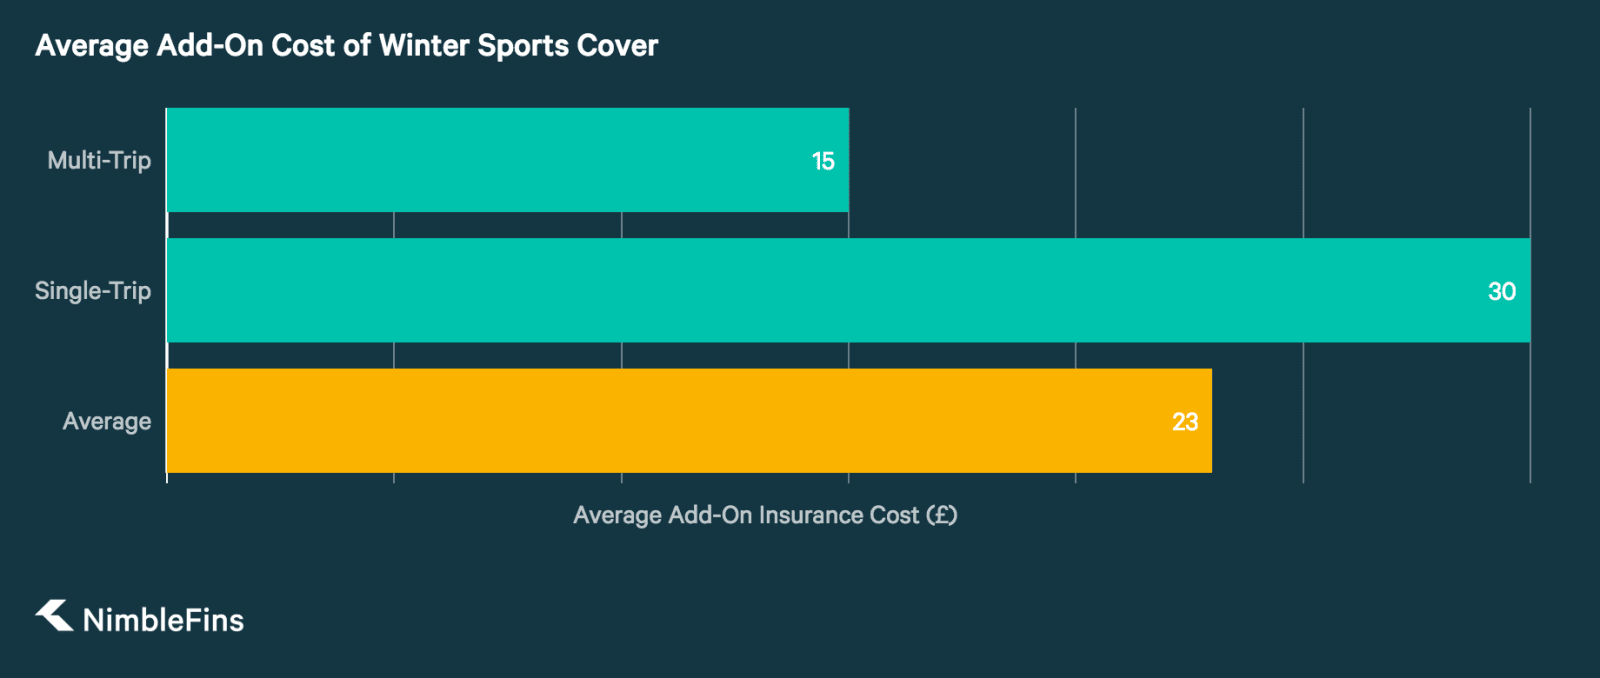 Chart showing the add-on cost of winter sports to single-trip and annual multi-trip insurance policies